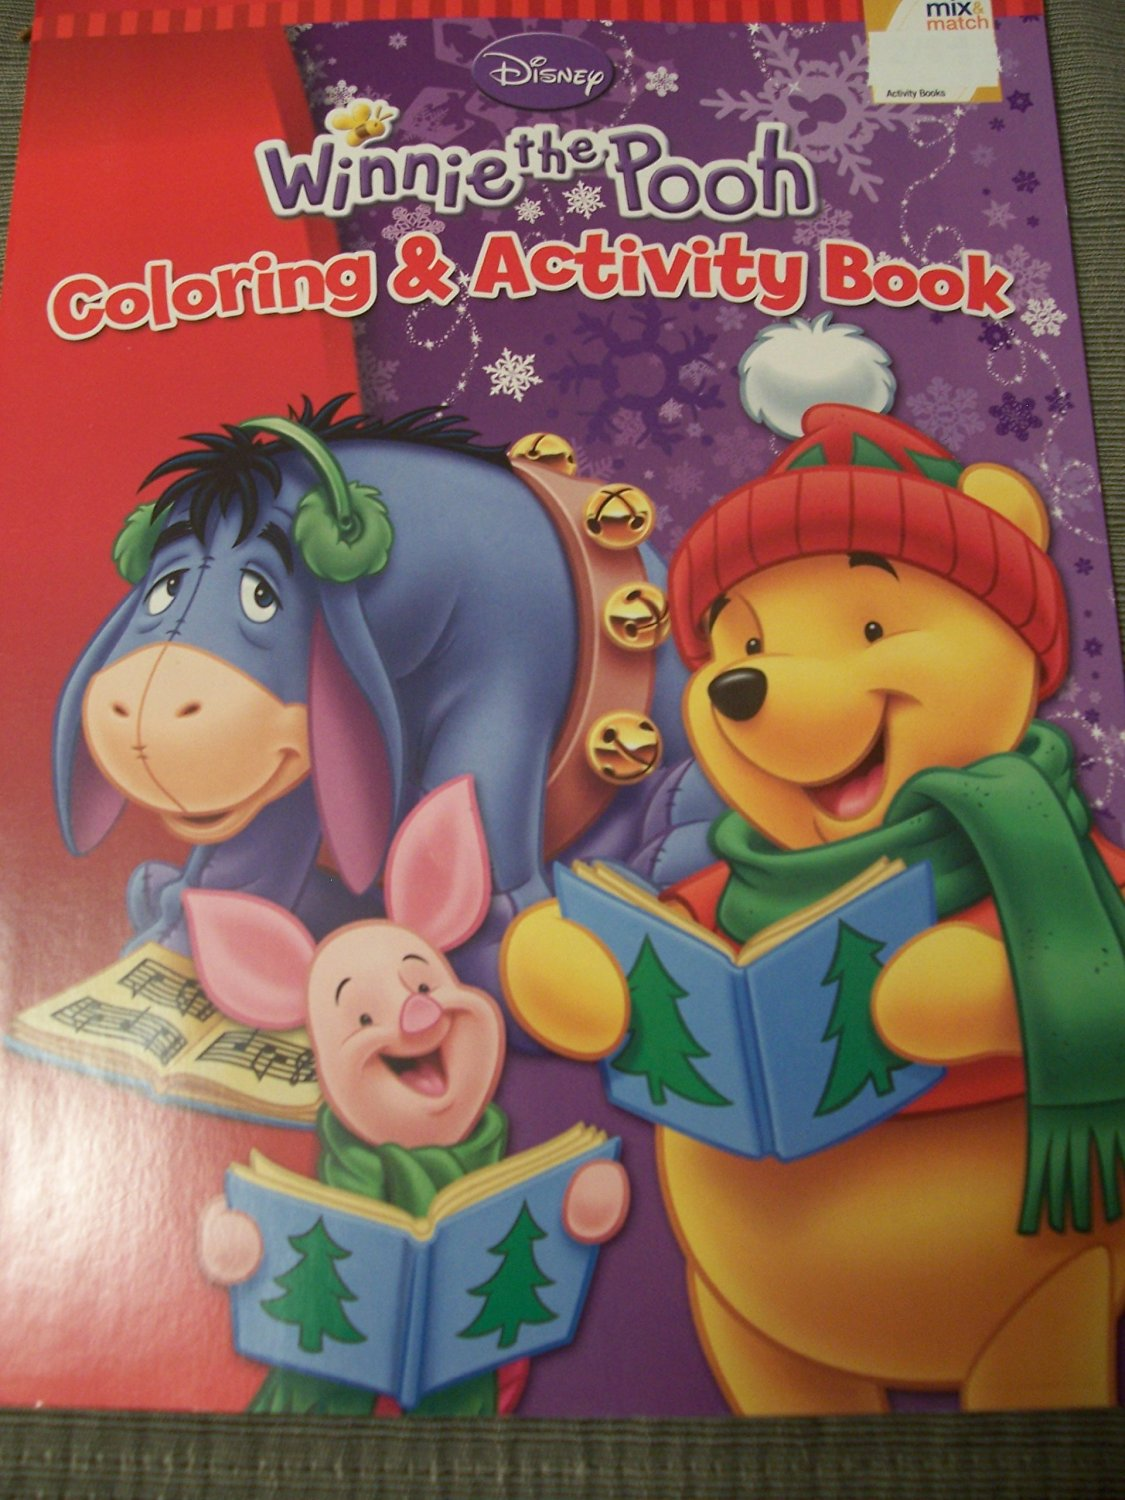 Disney Winnie the Pooh Coloring & Activity Book ~ Christmas Edition (Eeyore, Pooh, Piglet Caroling)